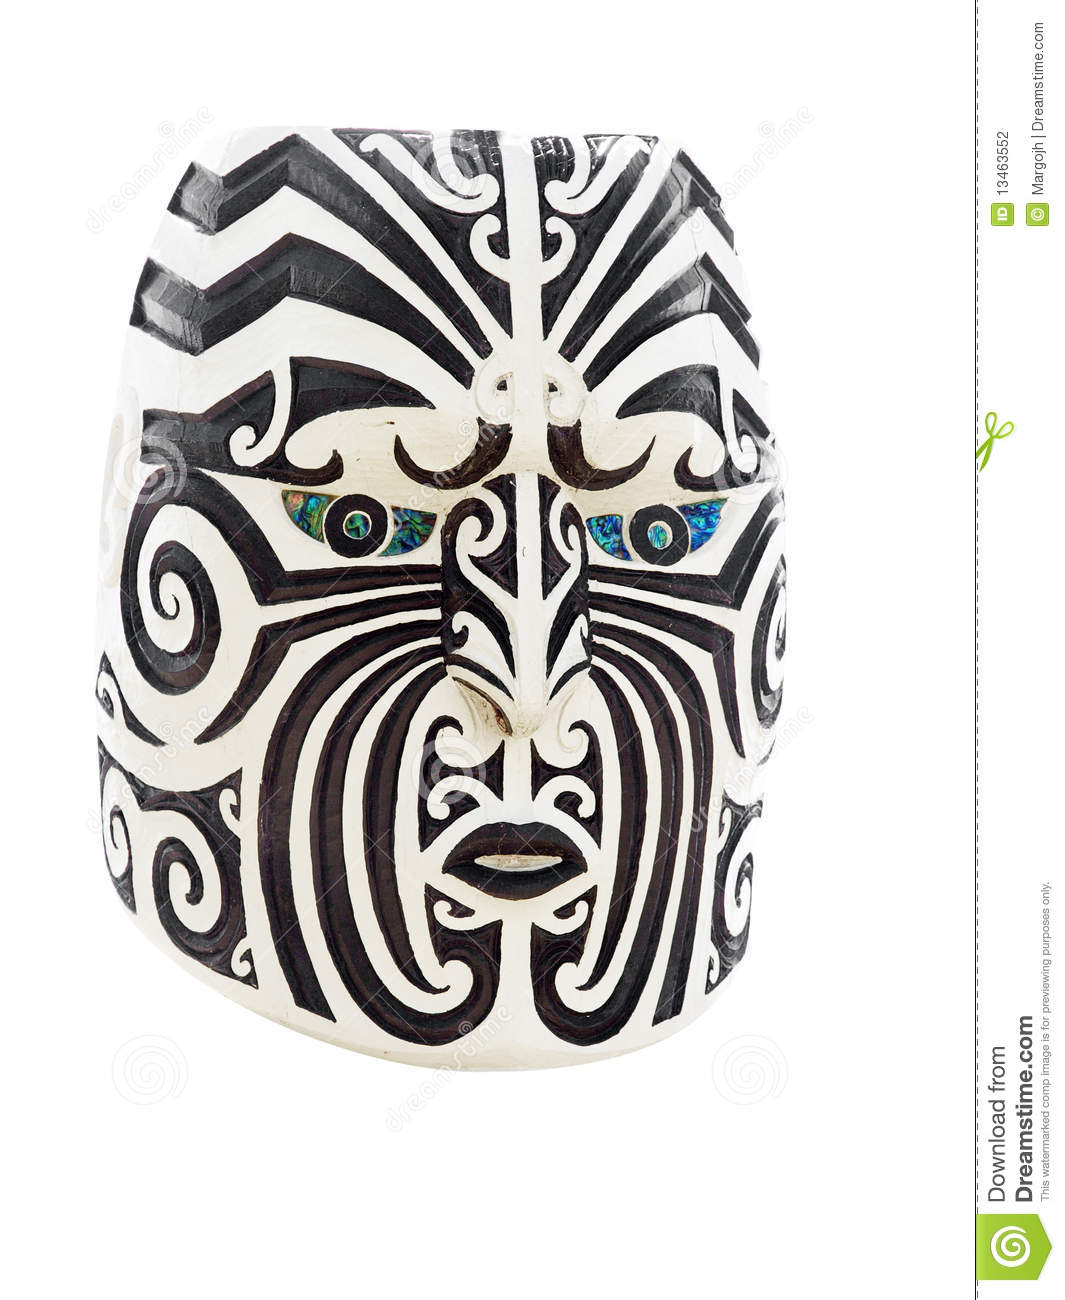 visage maori en bois photo stock image du masque maori. Black Bedroom Furniture Sets. Home Design Ideas